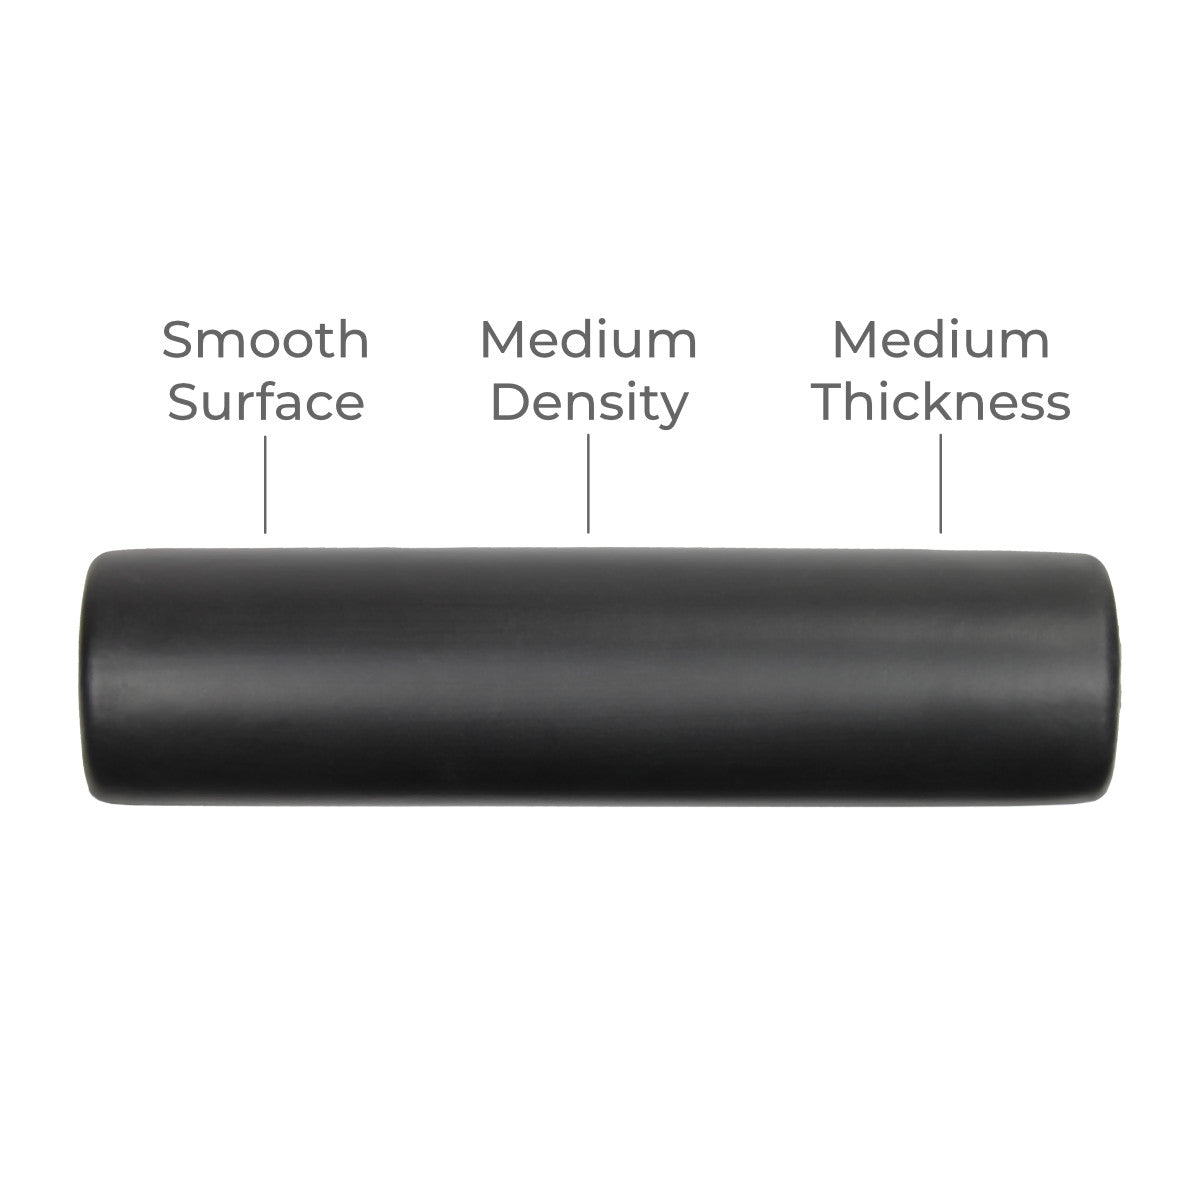 TuneUP smooth medium-density foam roller for use with DoubleUP frame